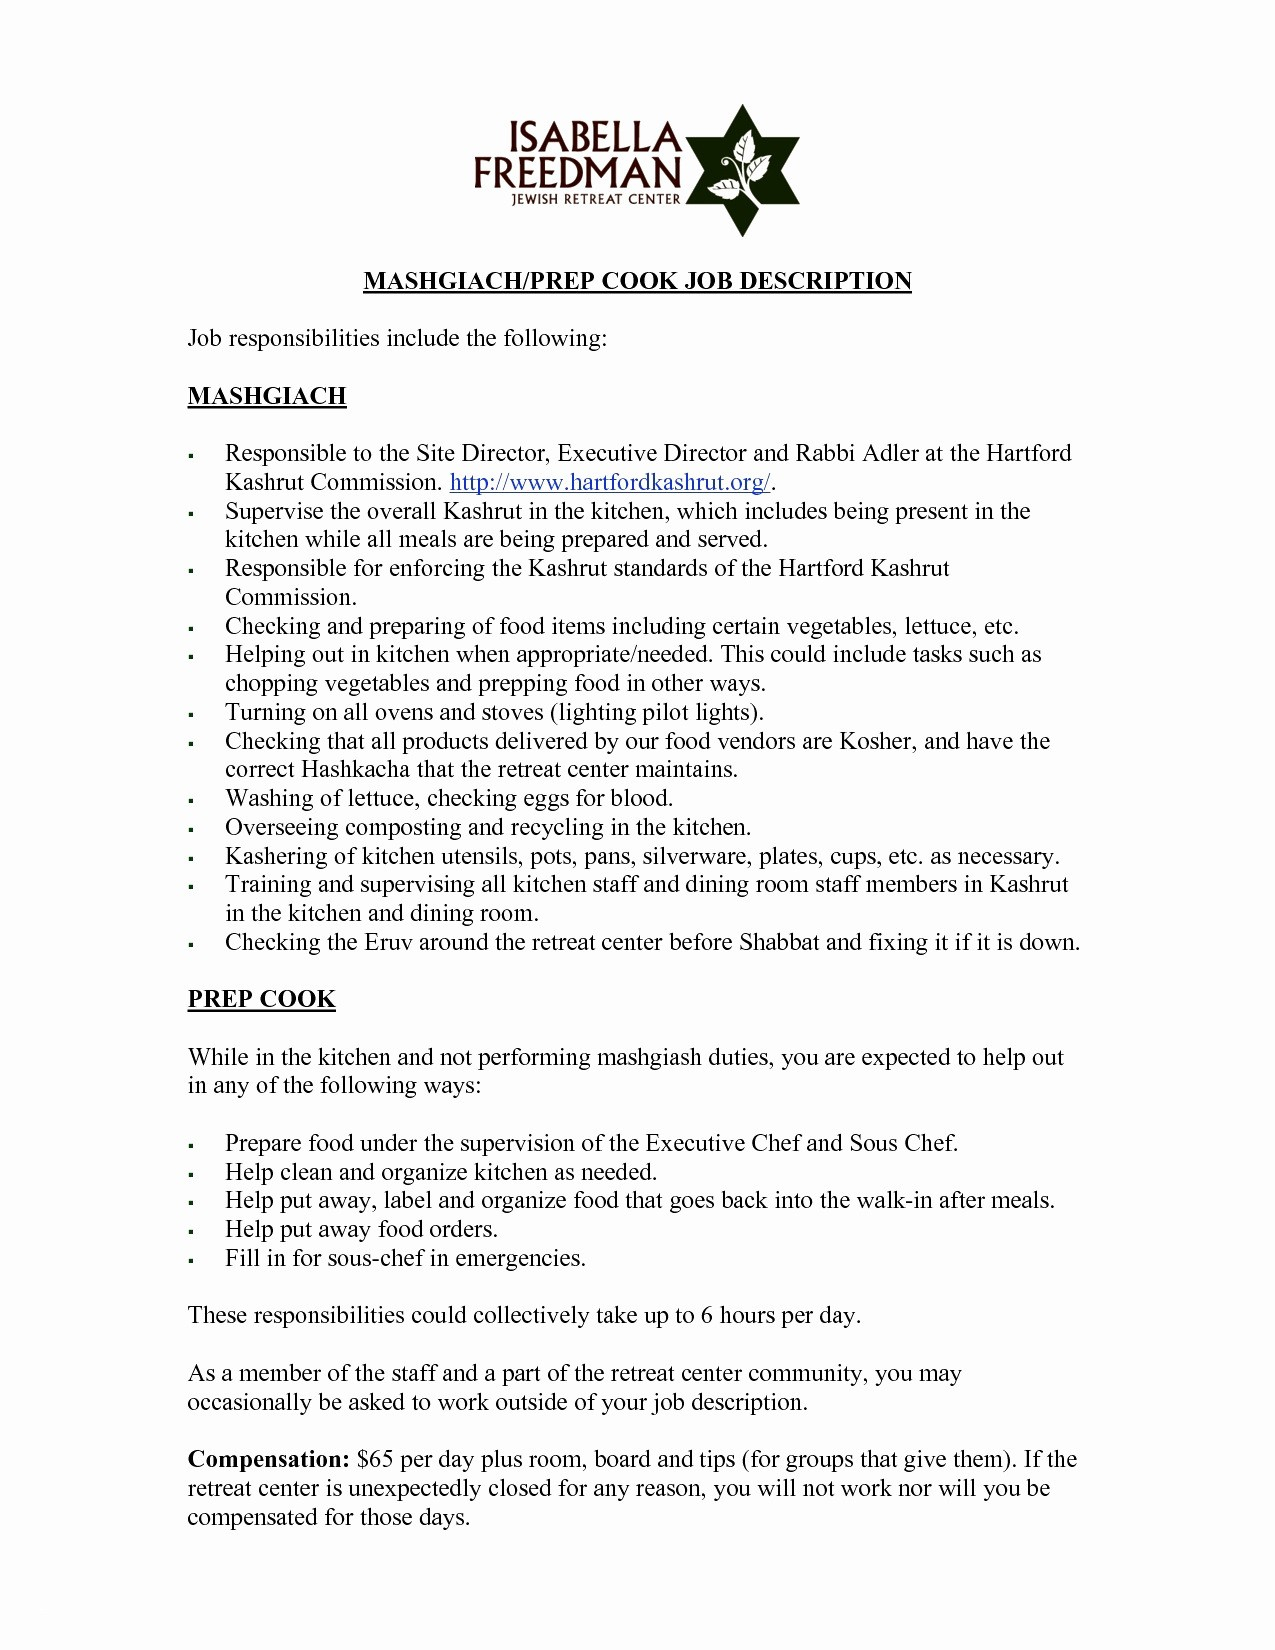 How to Create A Cover Letter Template - Resume Letter Doc New Resume Doc Template Luxury Resume and Cover